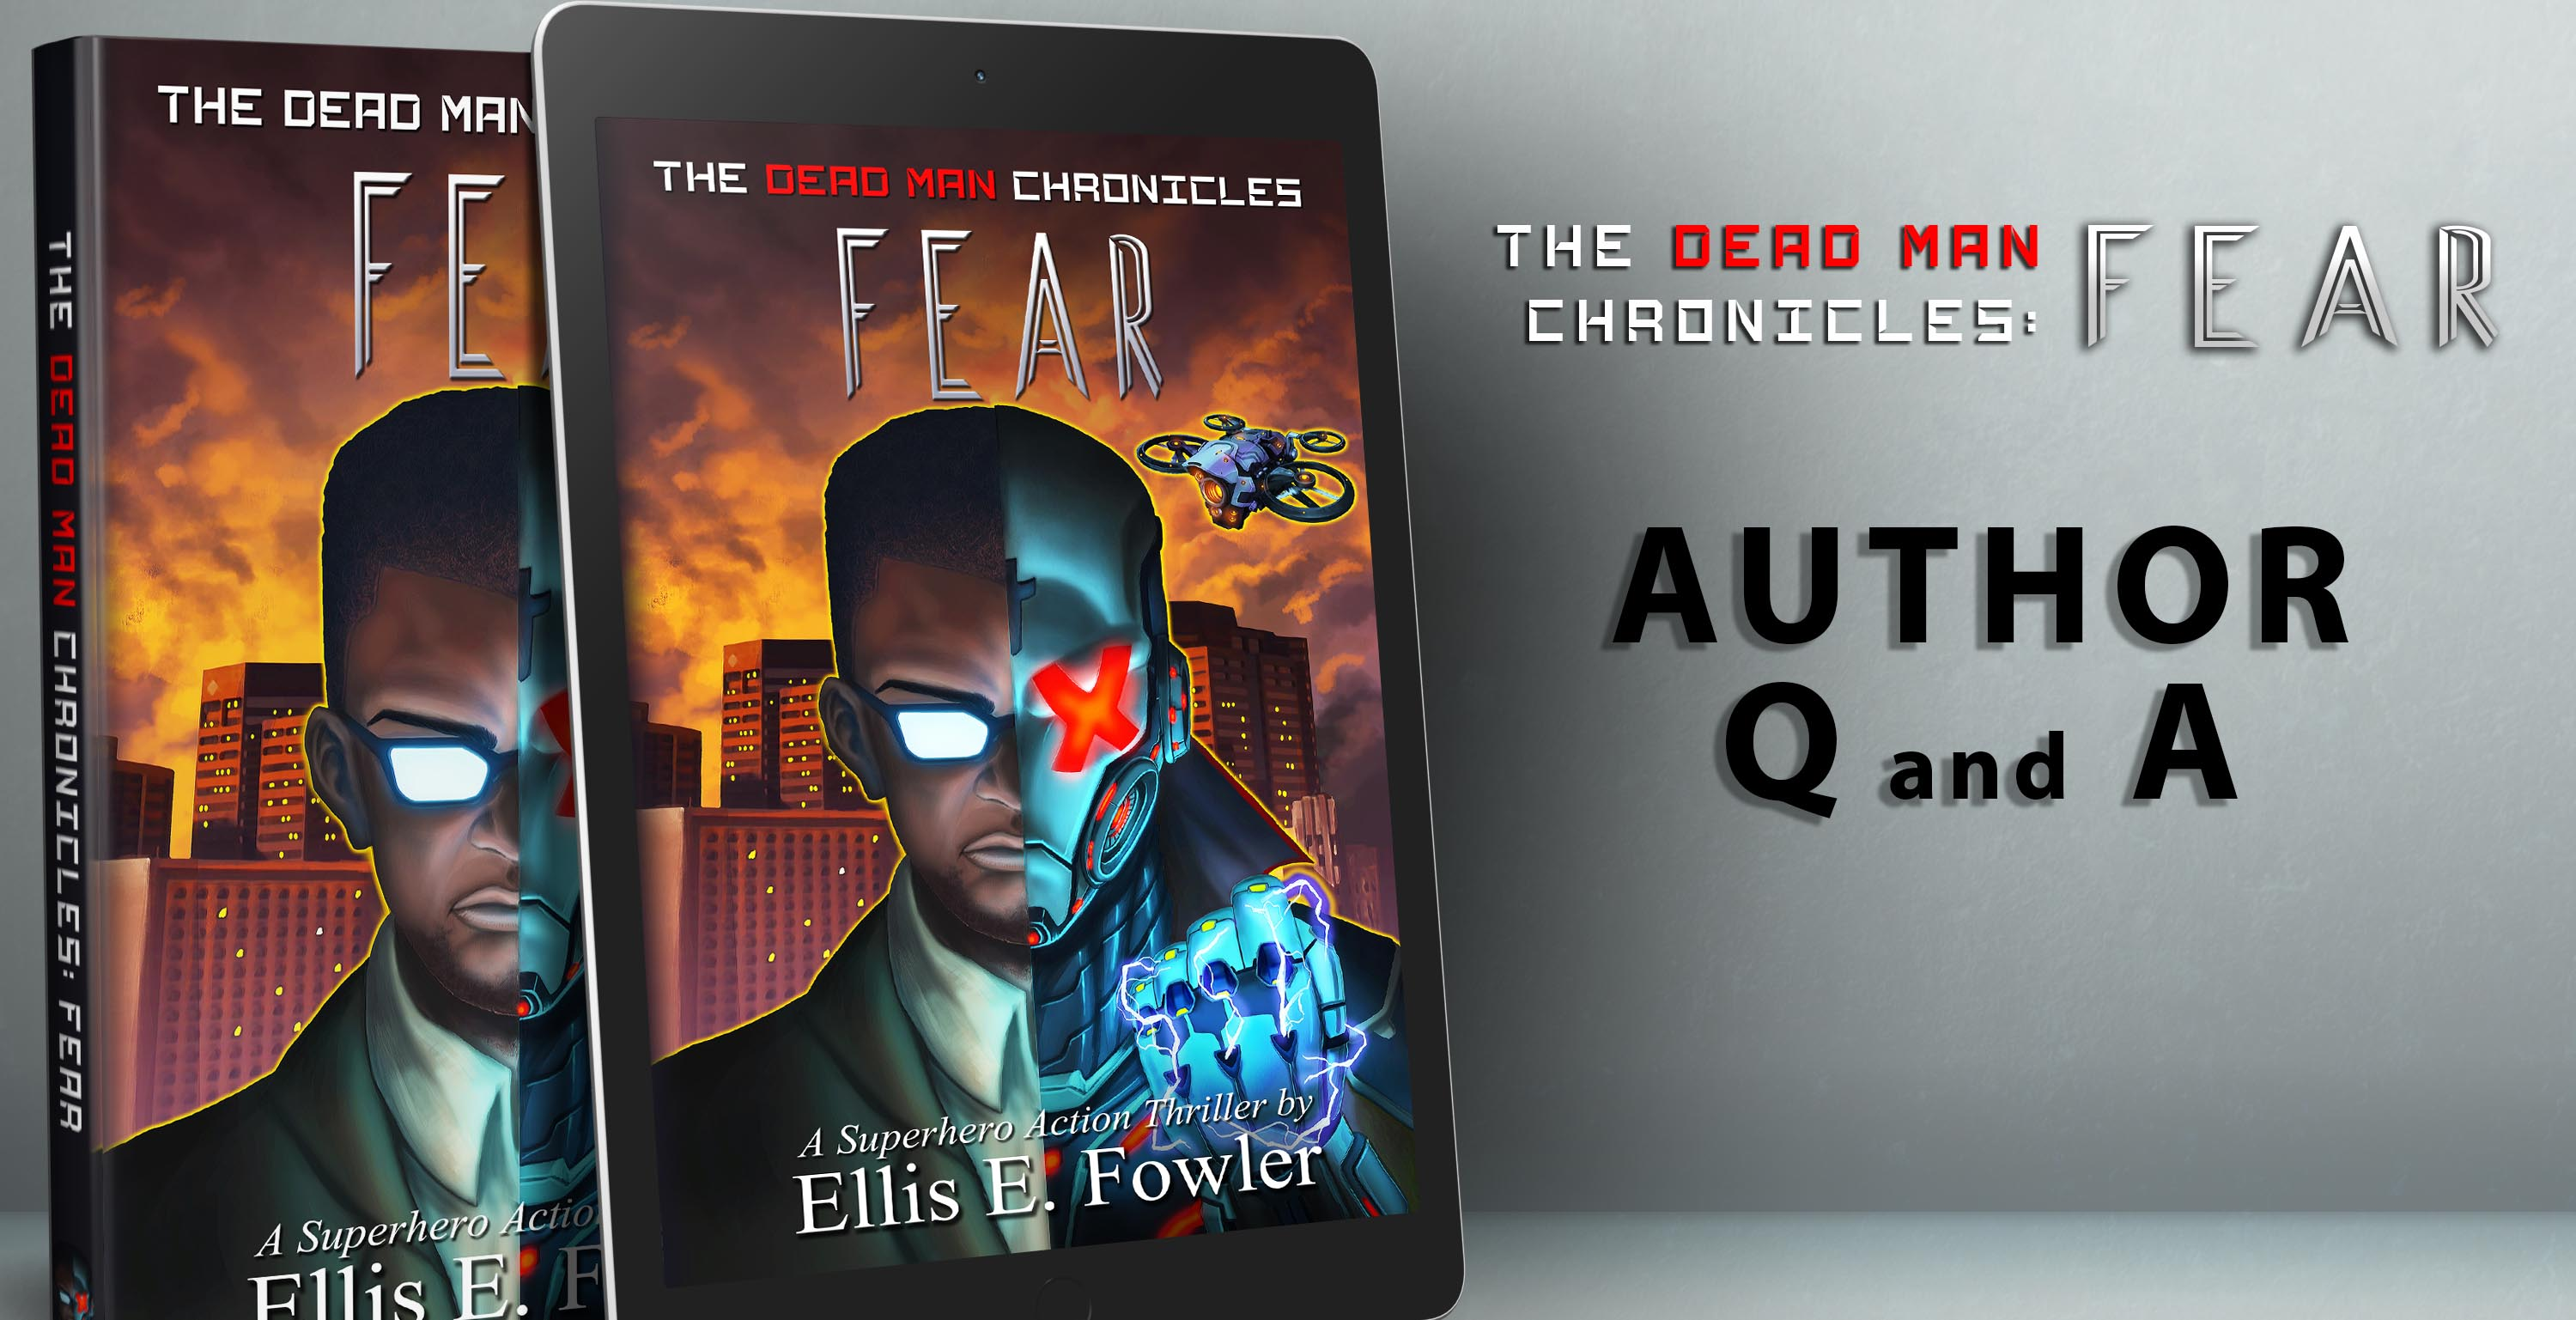 Author Q and A - The Dead Man Chronicles: Fear